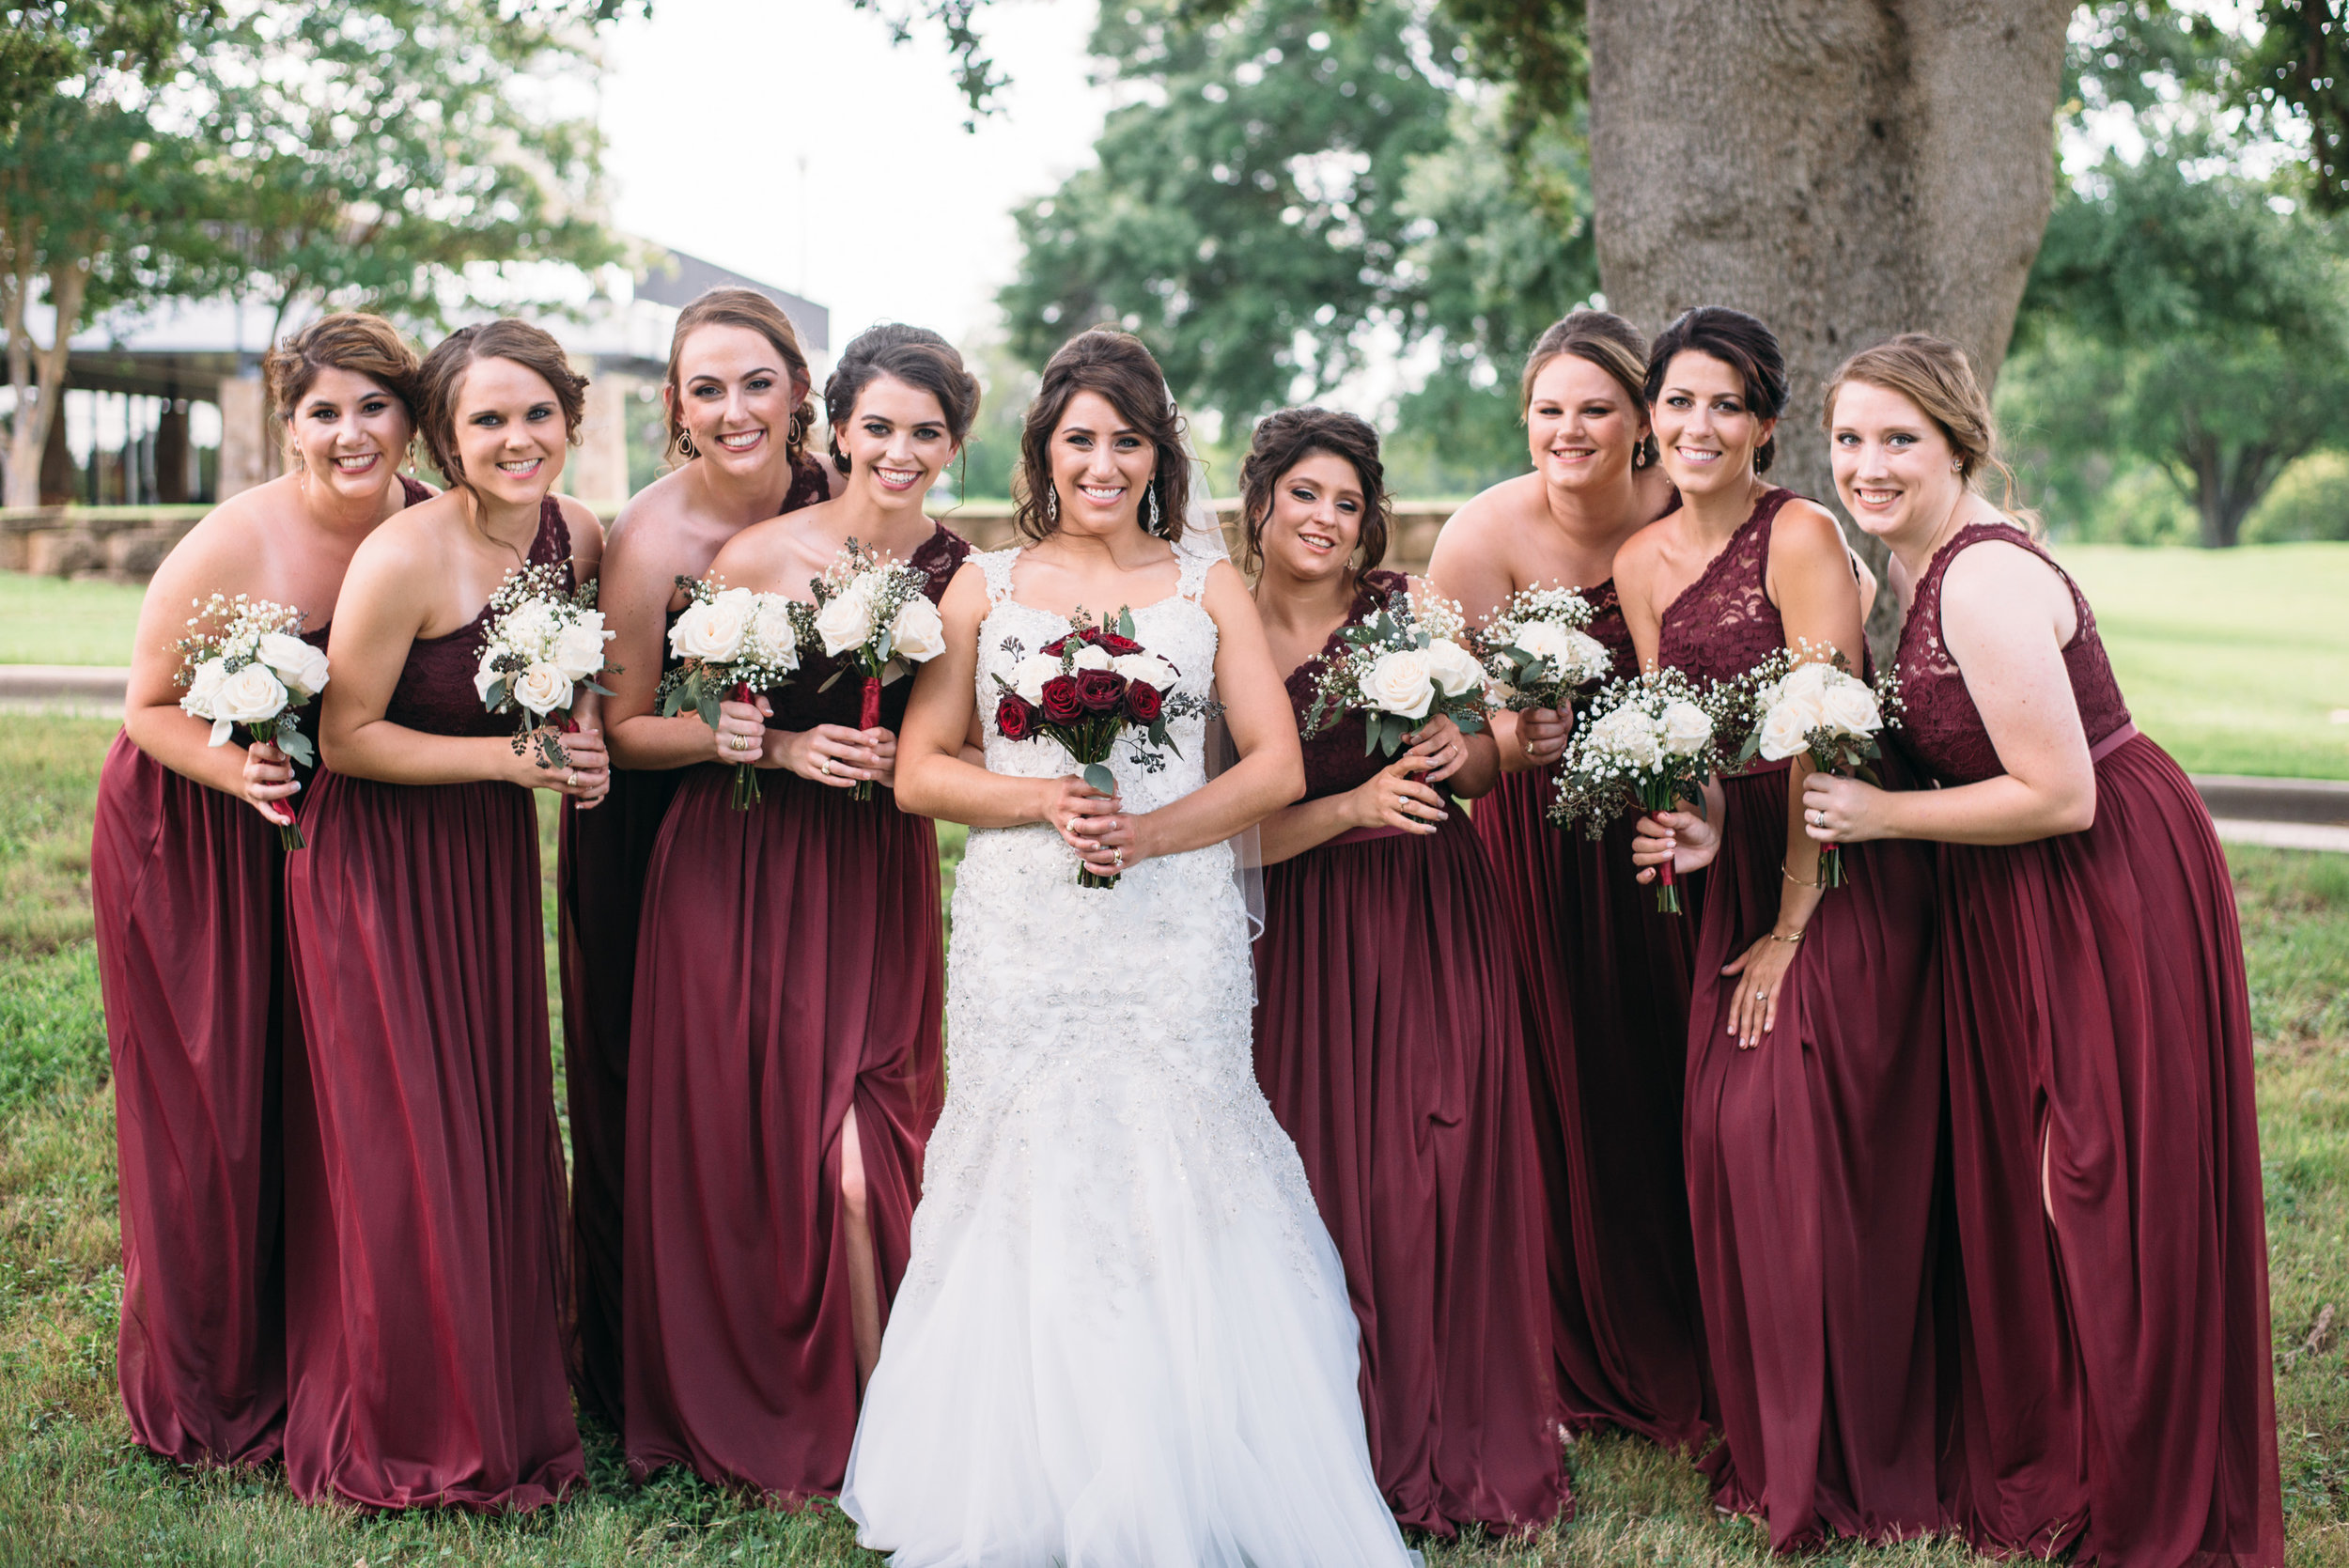 PhillipsEventCenter-AggieWedding-CollegeStationPhotographer_21.jpg